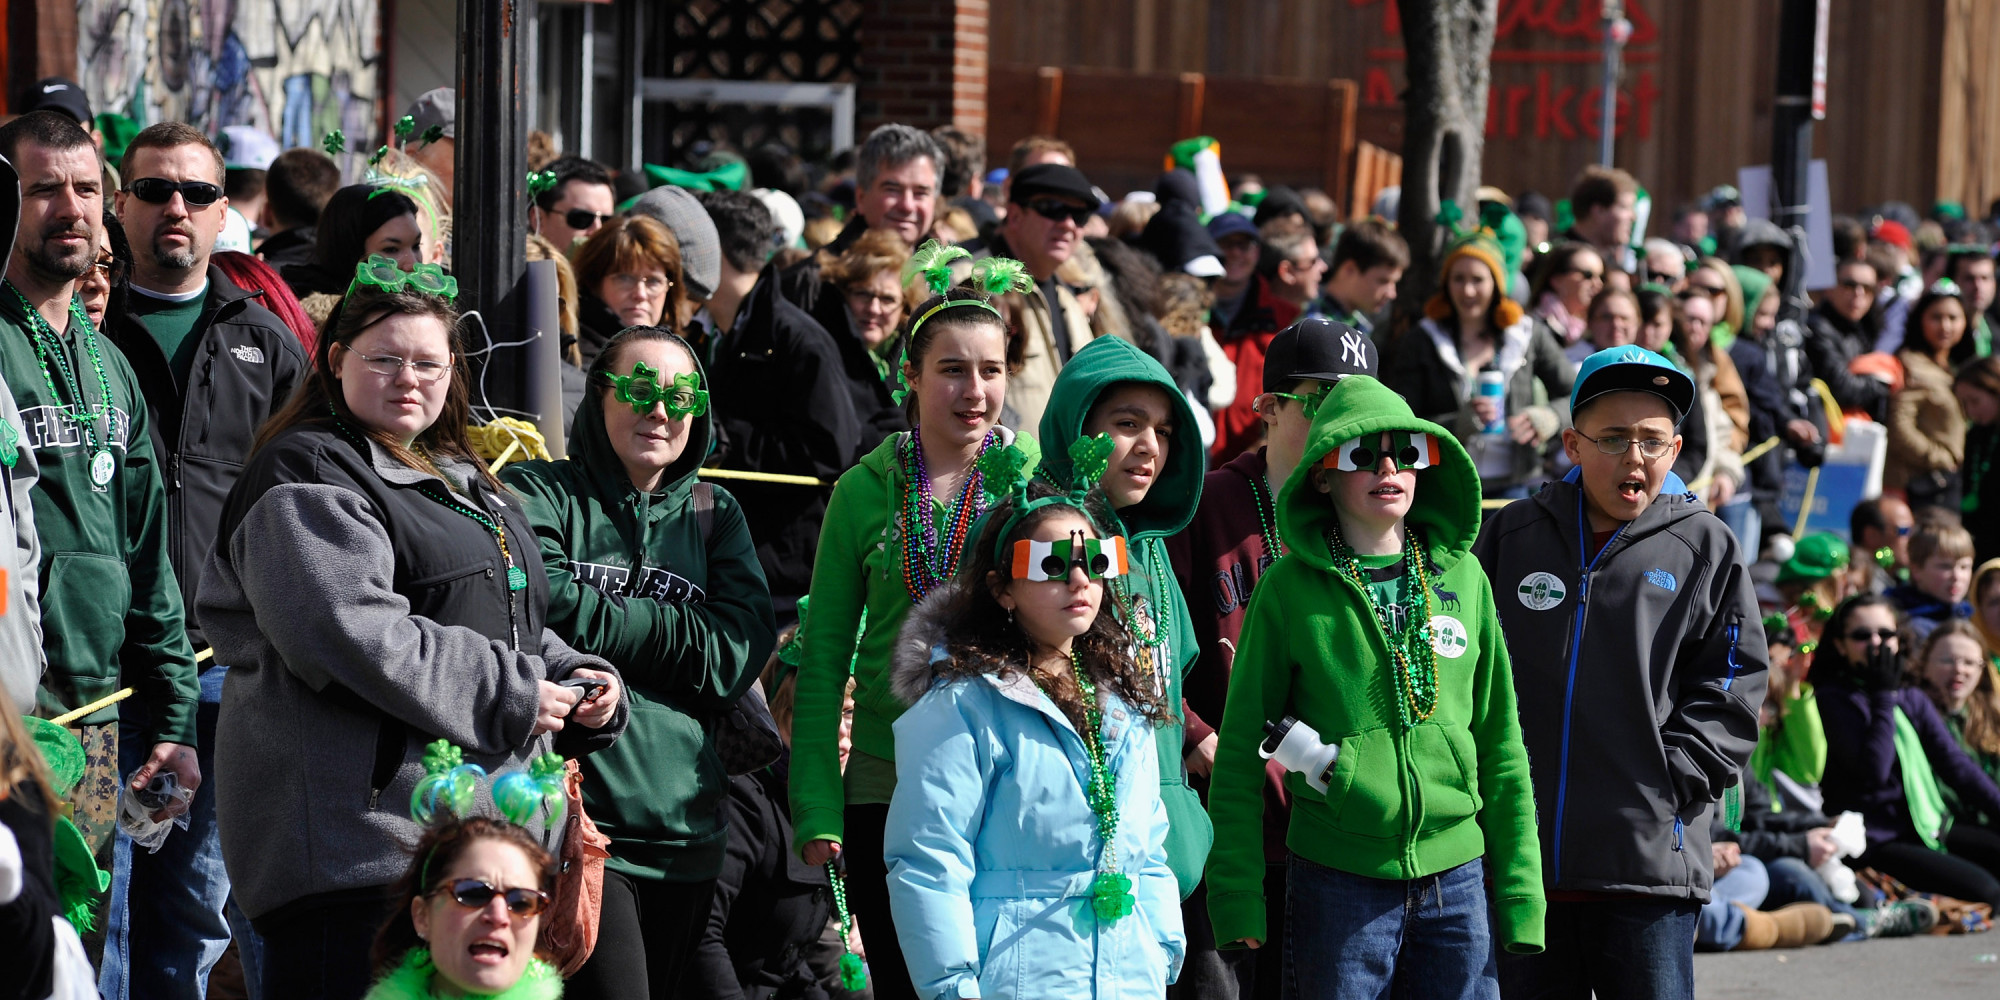 an analysis of the importance of the st patrick s day parade in new york city New york (cbsnewyork/ap) — manhattan's fifth avenue came alive saturday  for the 257th running of new york city's st patrick's day.